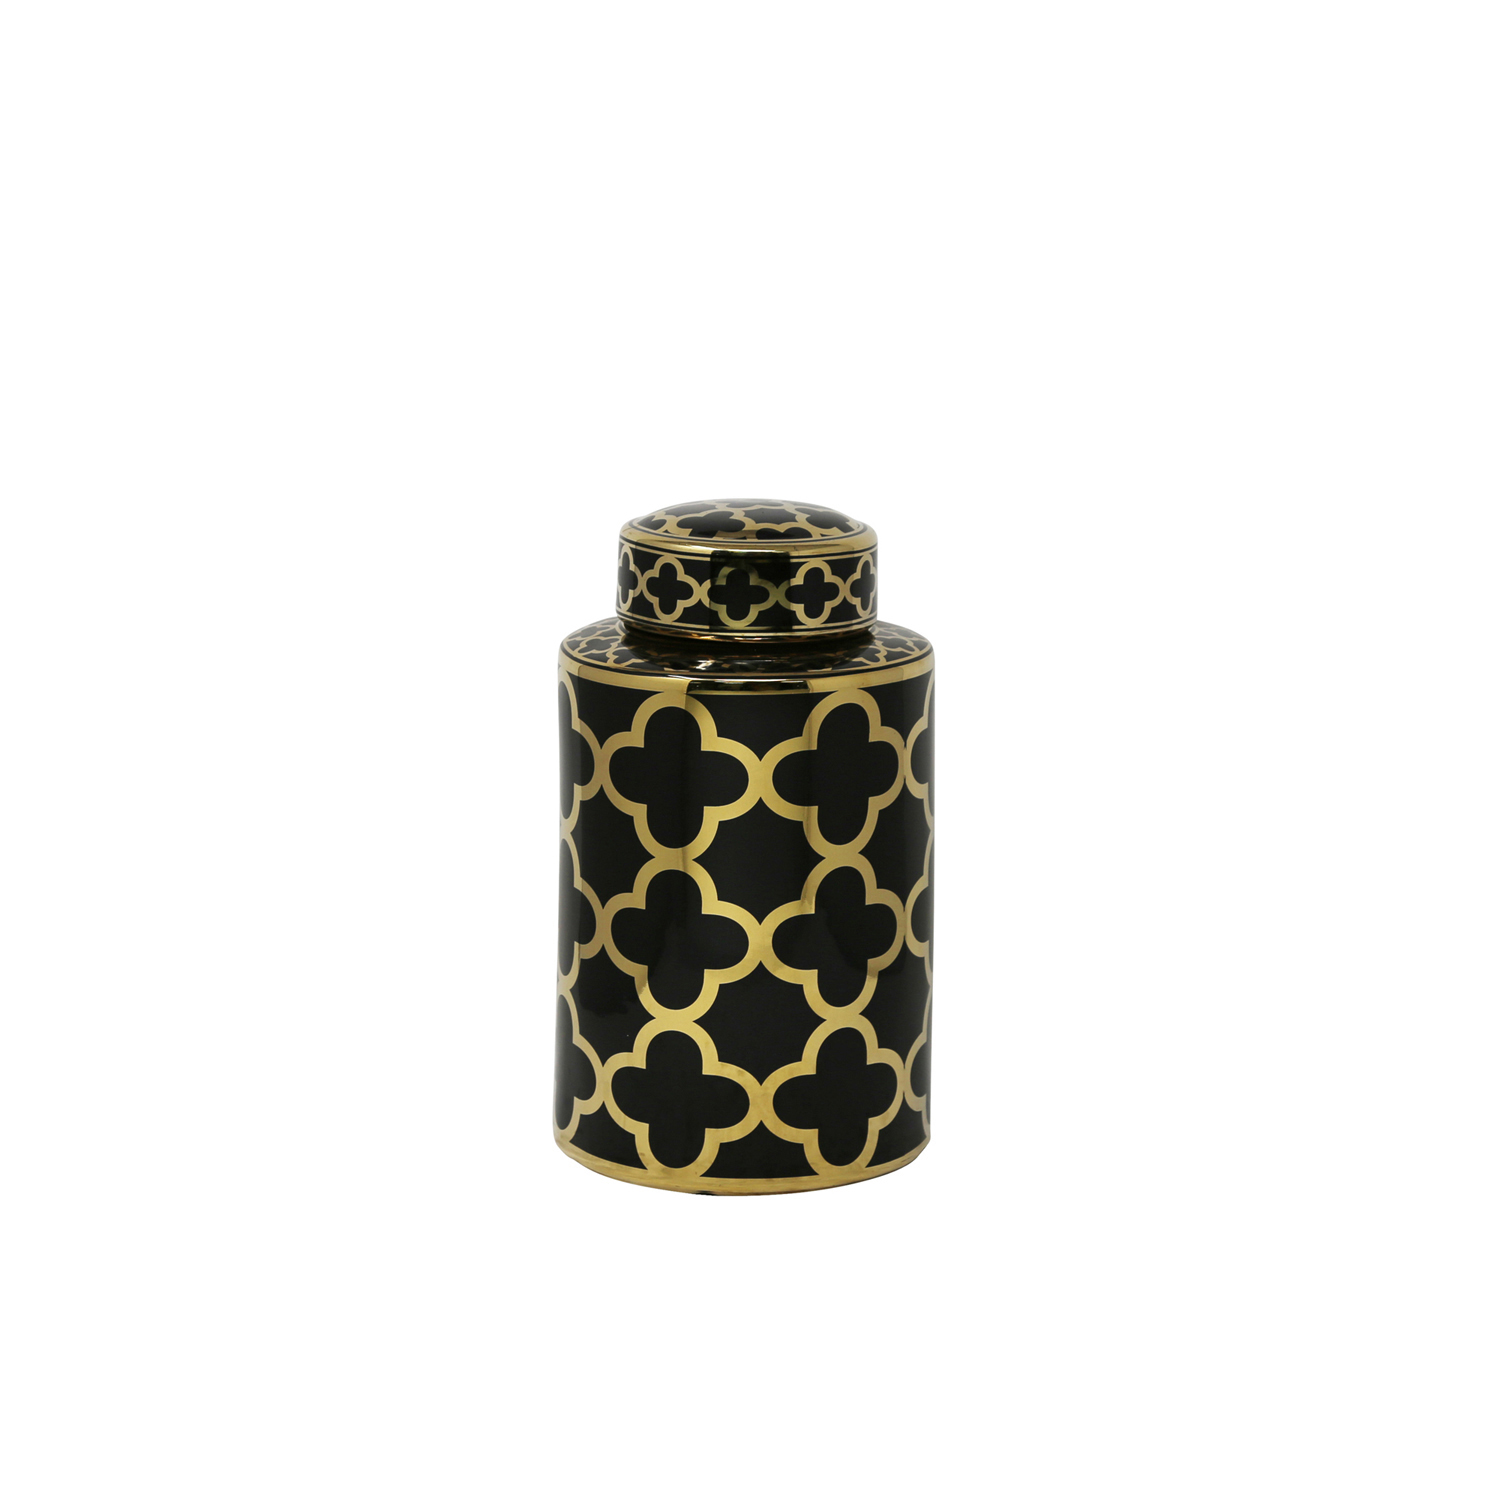 Black & Gold Elegant Glam Decorative Covered Jar